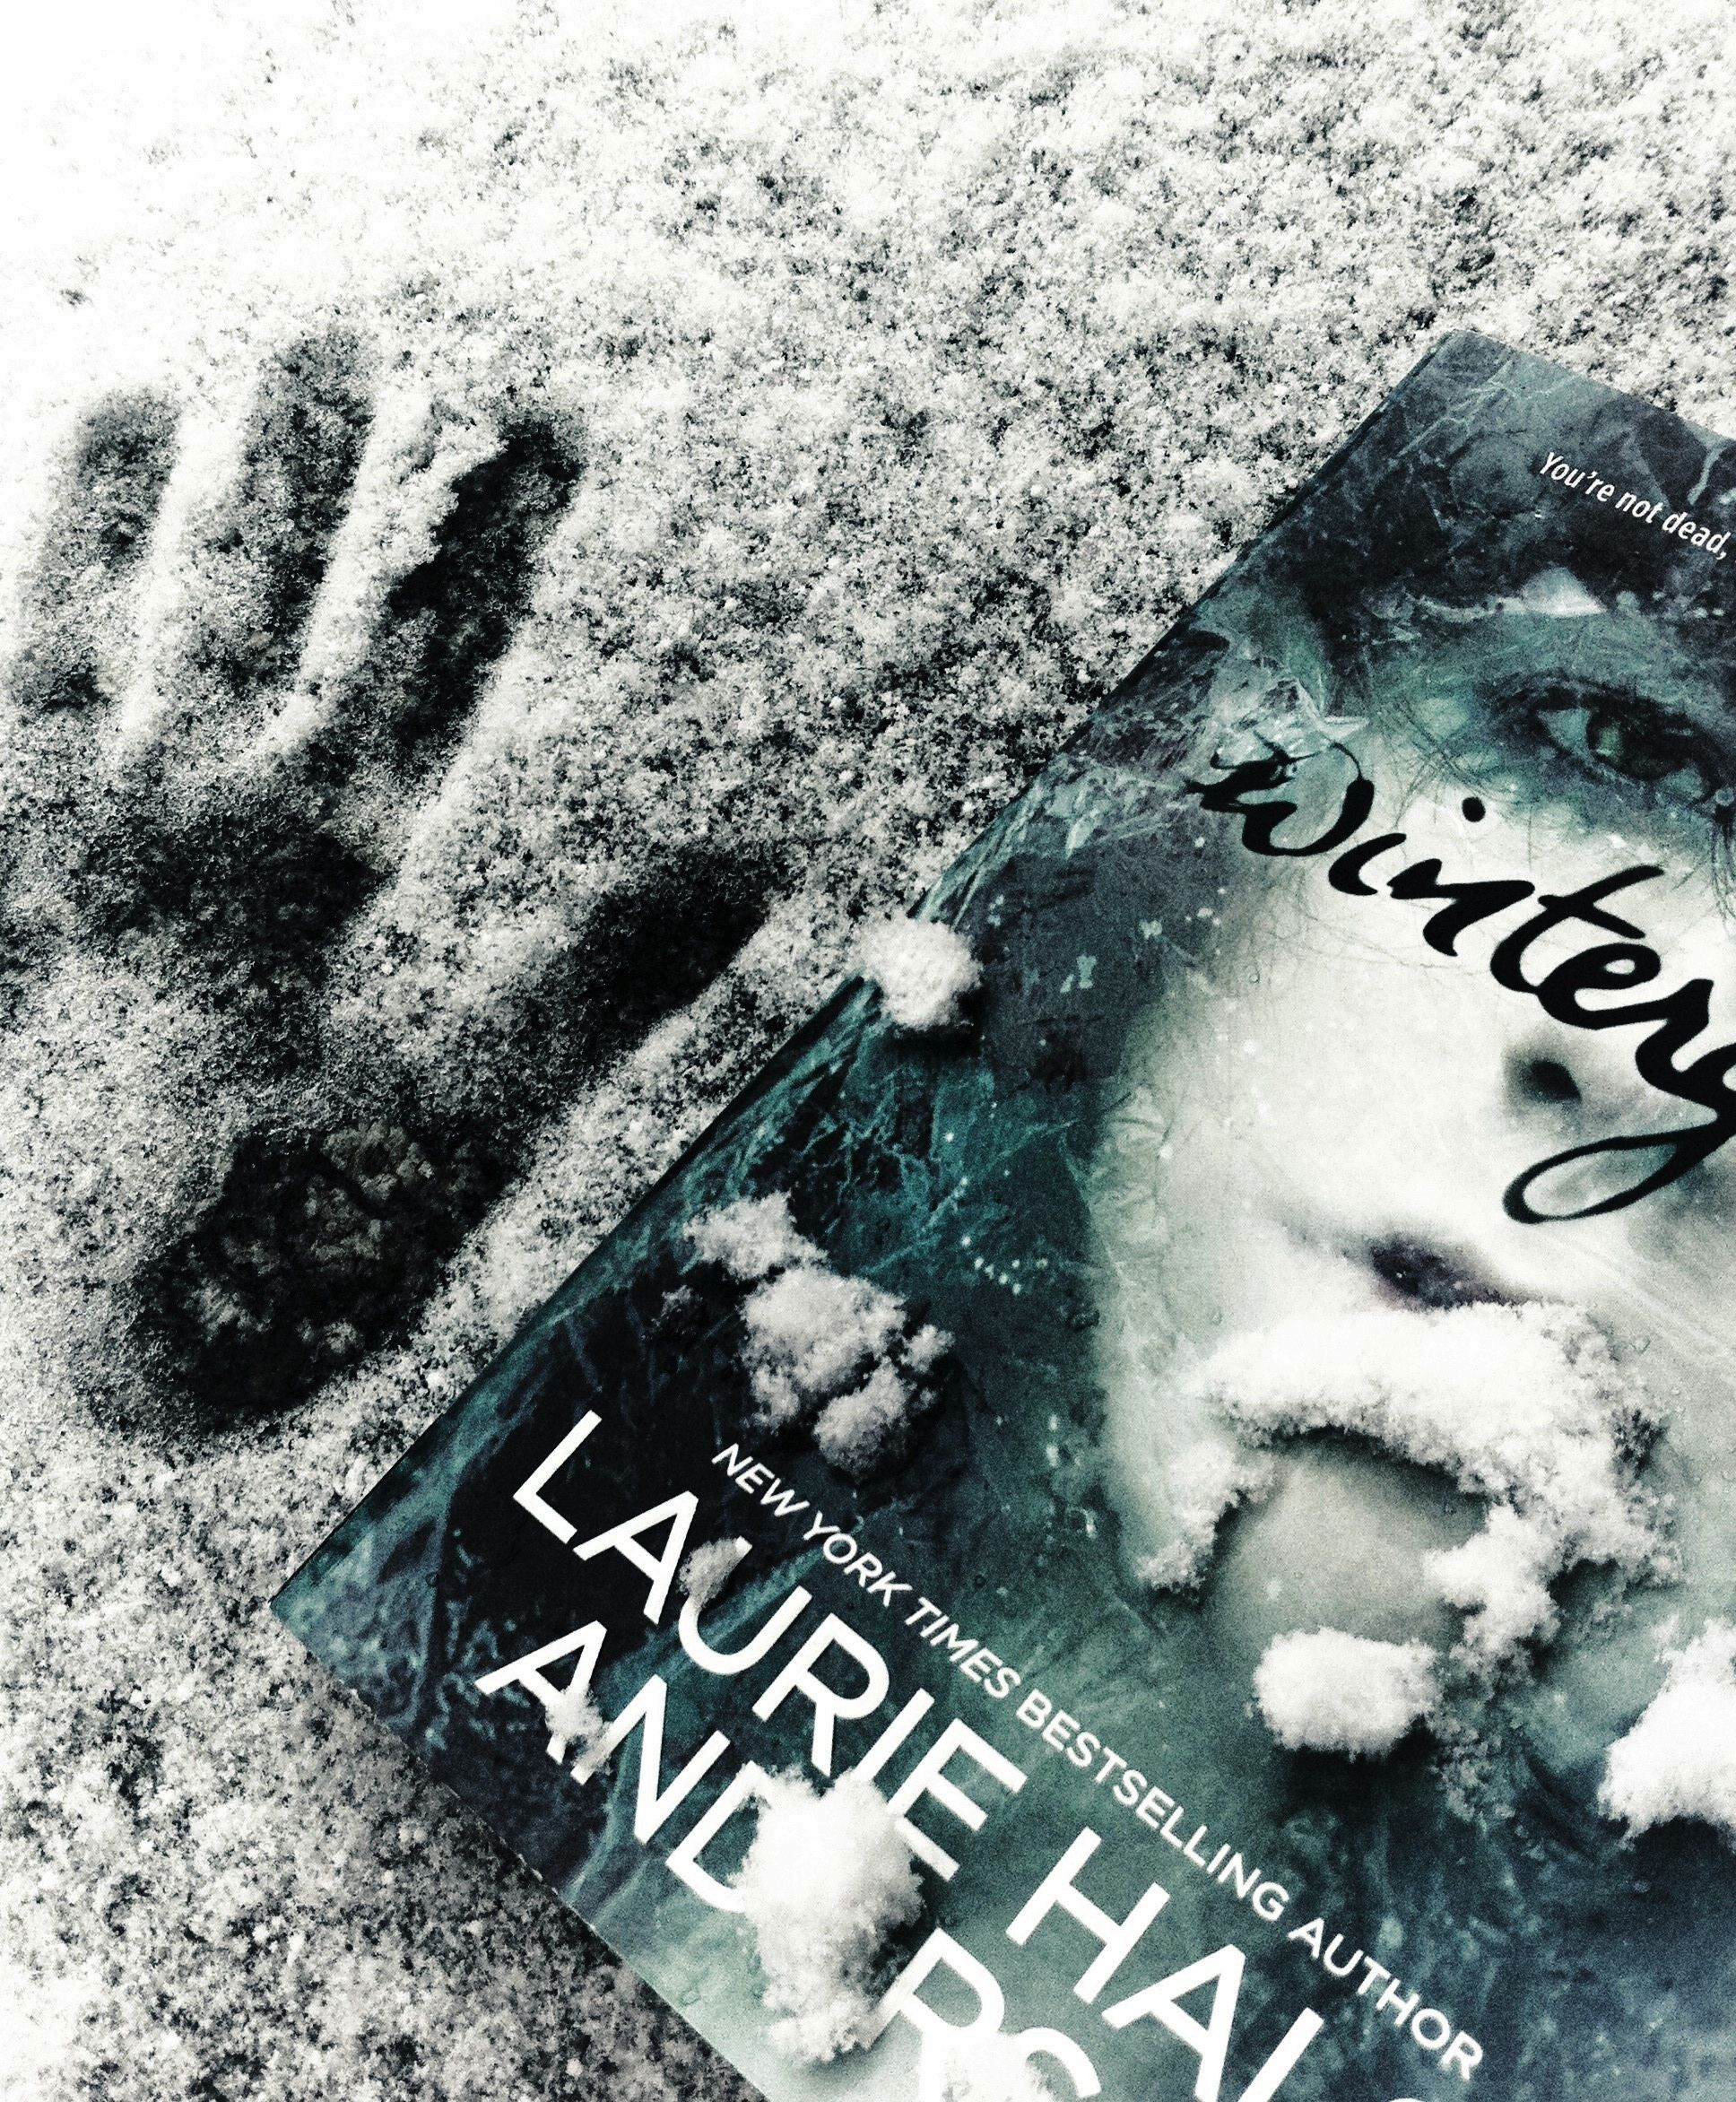 I don't usually do teen lit. But Laurie Halse Anderson's Wintergirls is about anorexy and I just had to read it. Well, as expected, I didn't love it but it was okay. A little bit too bitter and sensational, but Anderson also describes the mind of the anorectic very well. Healing is a long process and cannot be forced.